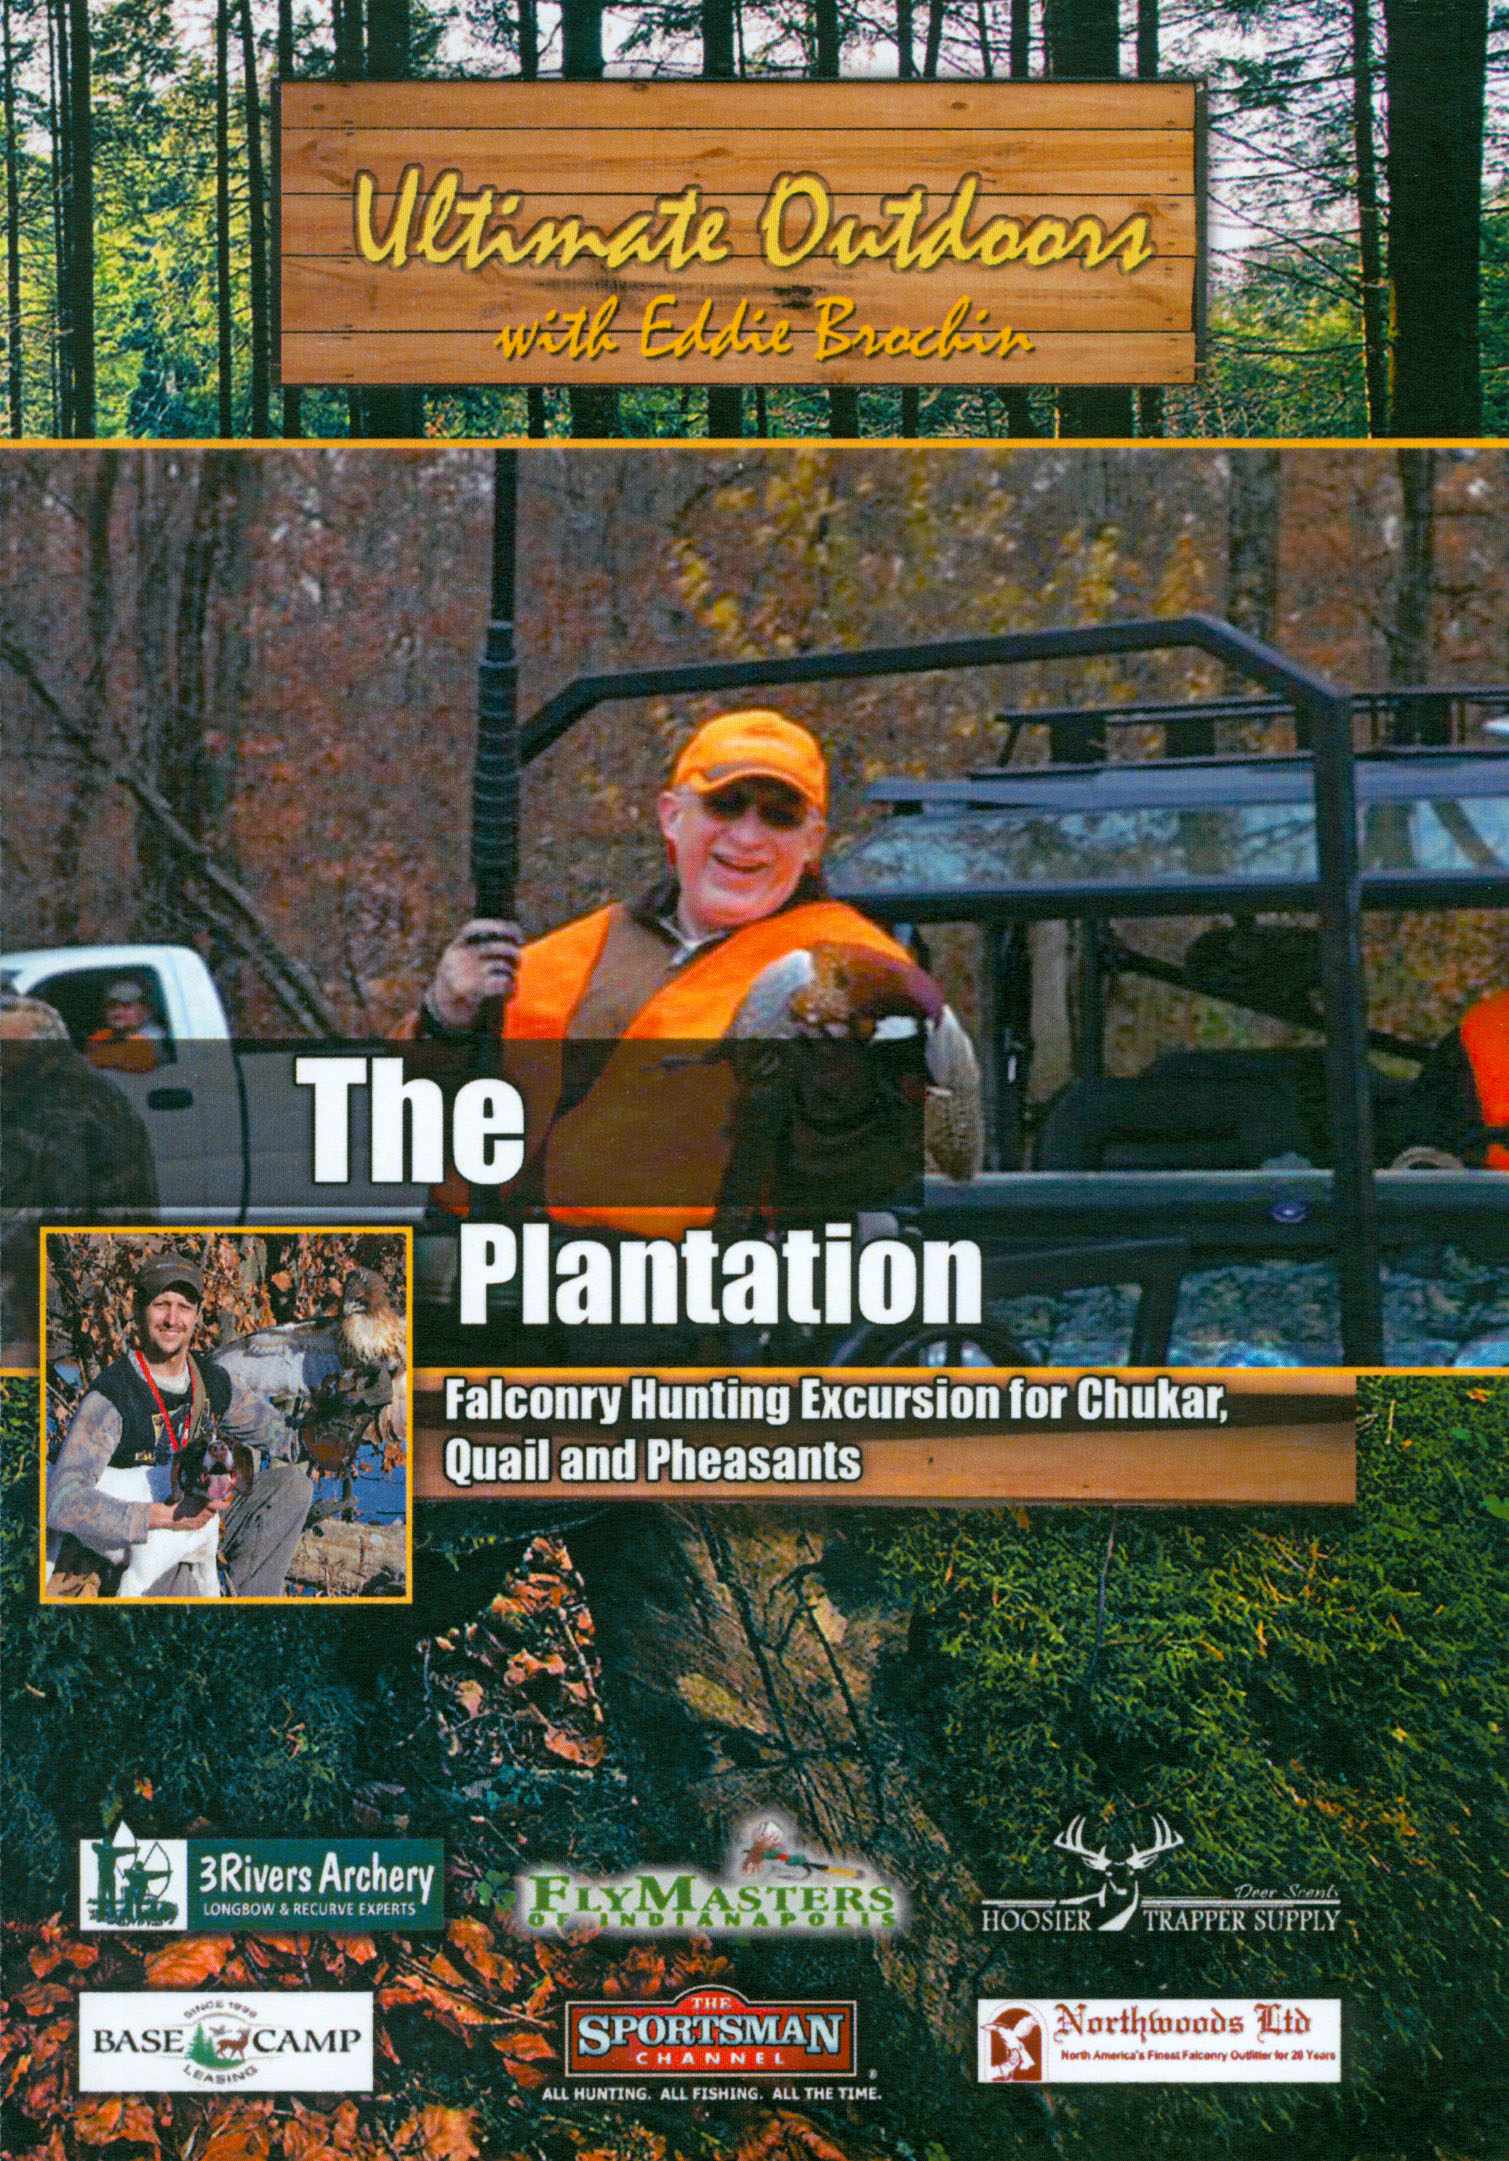 Ultimate Outdoors With Eddie Brochin: The Plantation